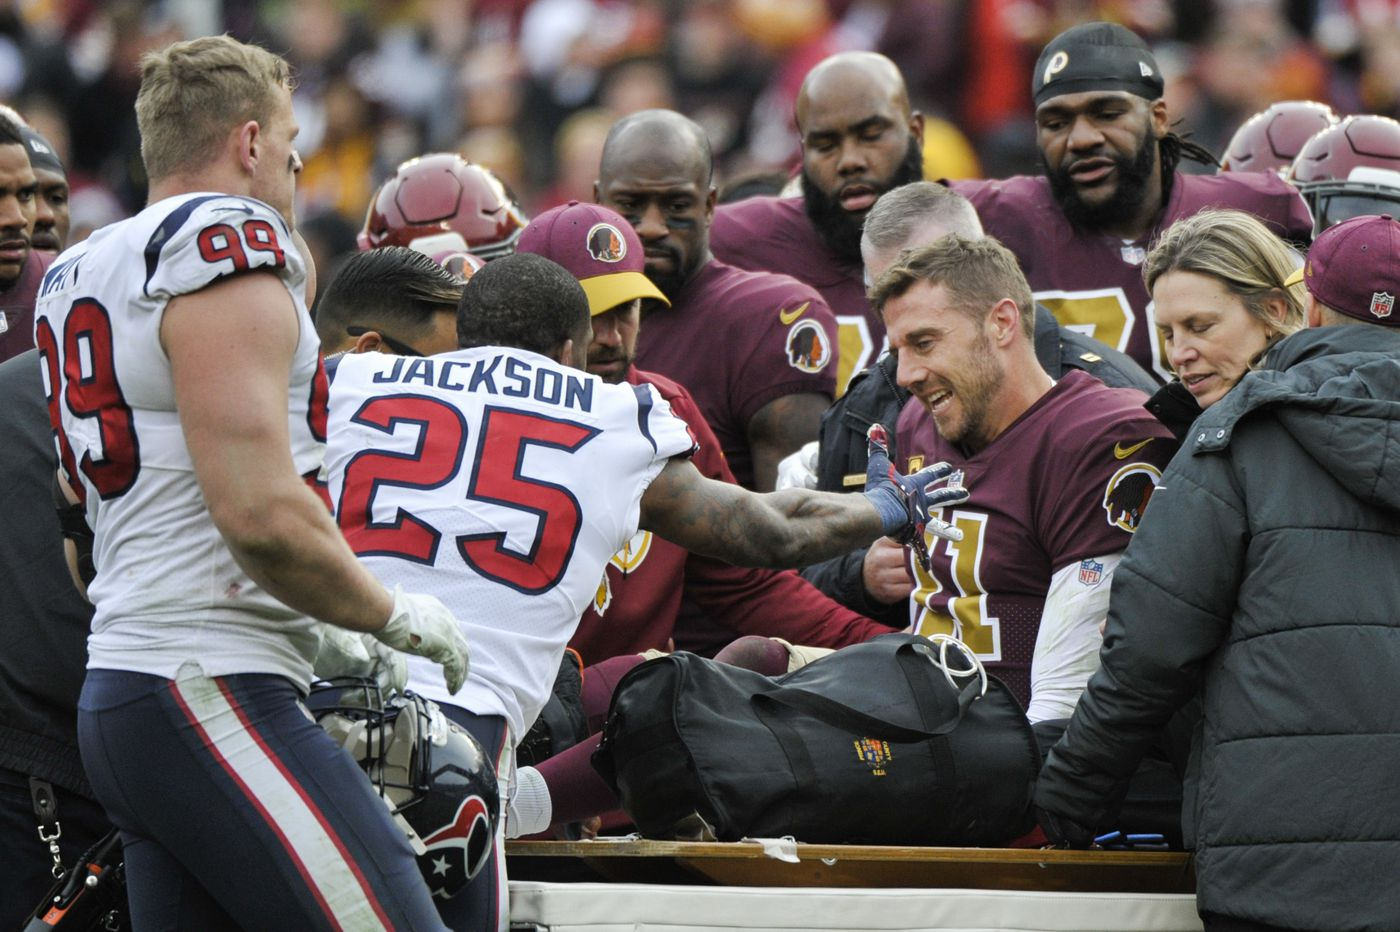 Redskins QB Alex Smith out for season after suffering serious leg injury in loss to Texans